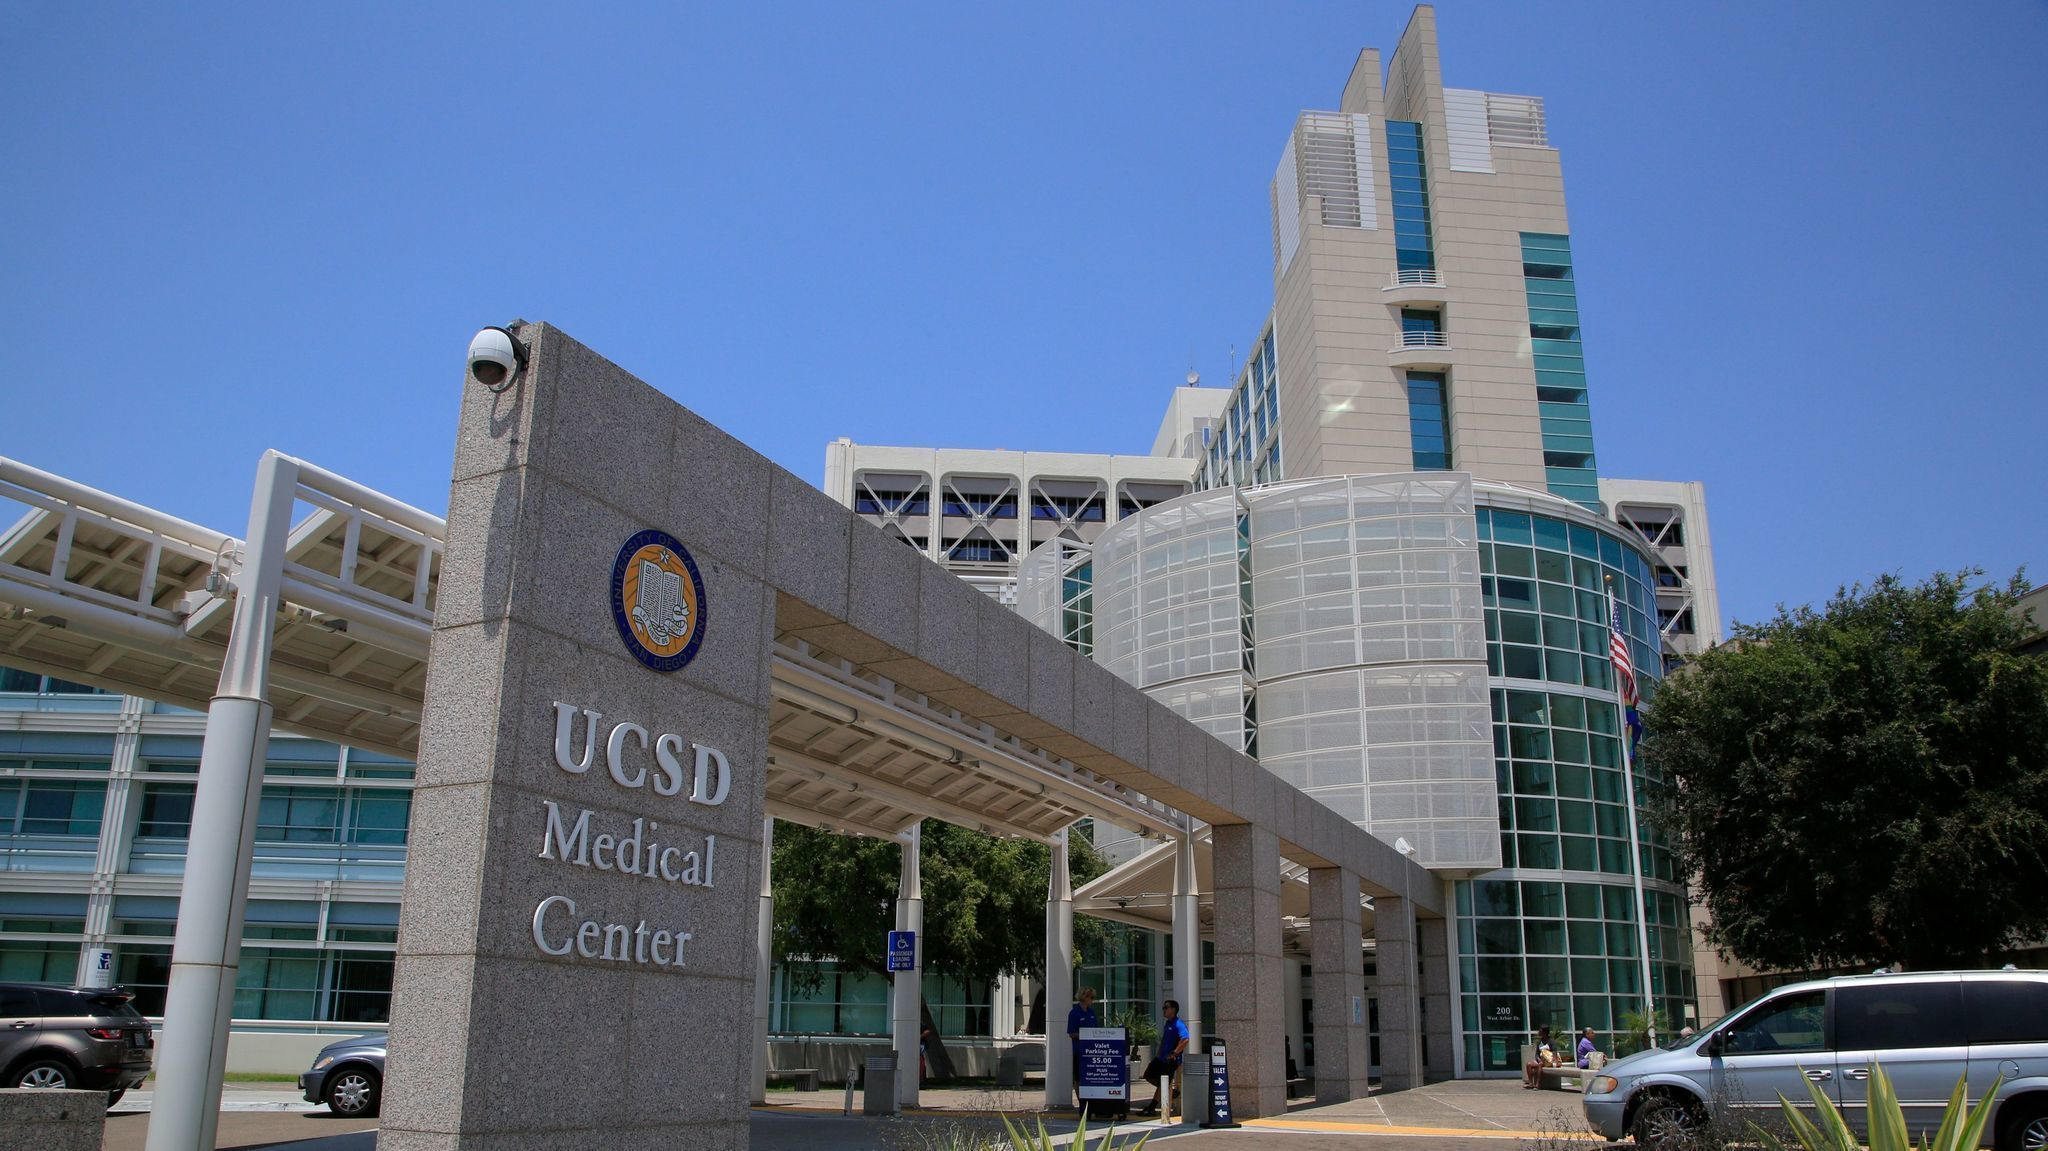 Eyeglass Repair San Diego Hillcrest : UC San Diego plans to build new hospital in Hillcrest ...